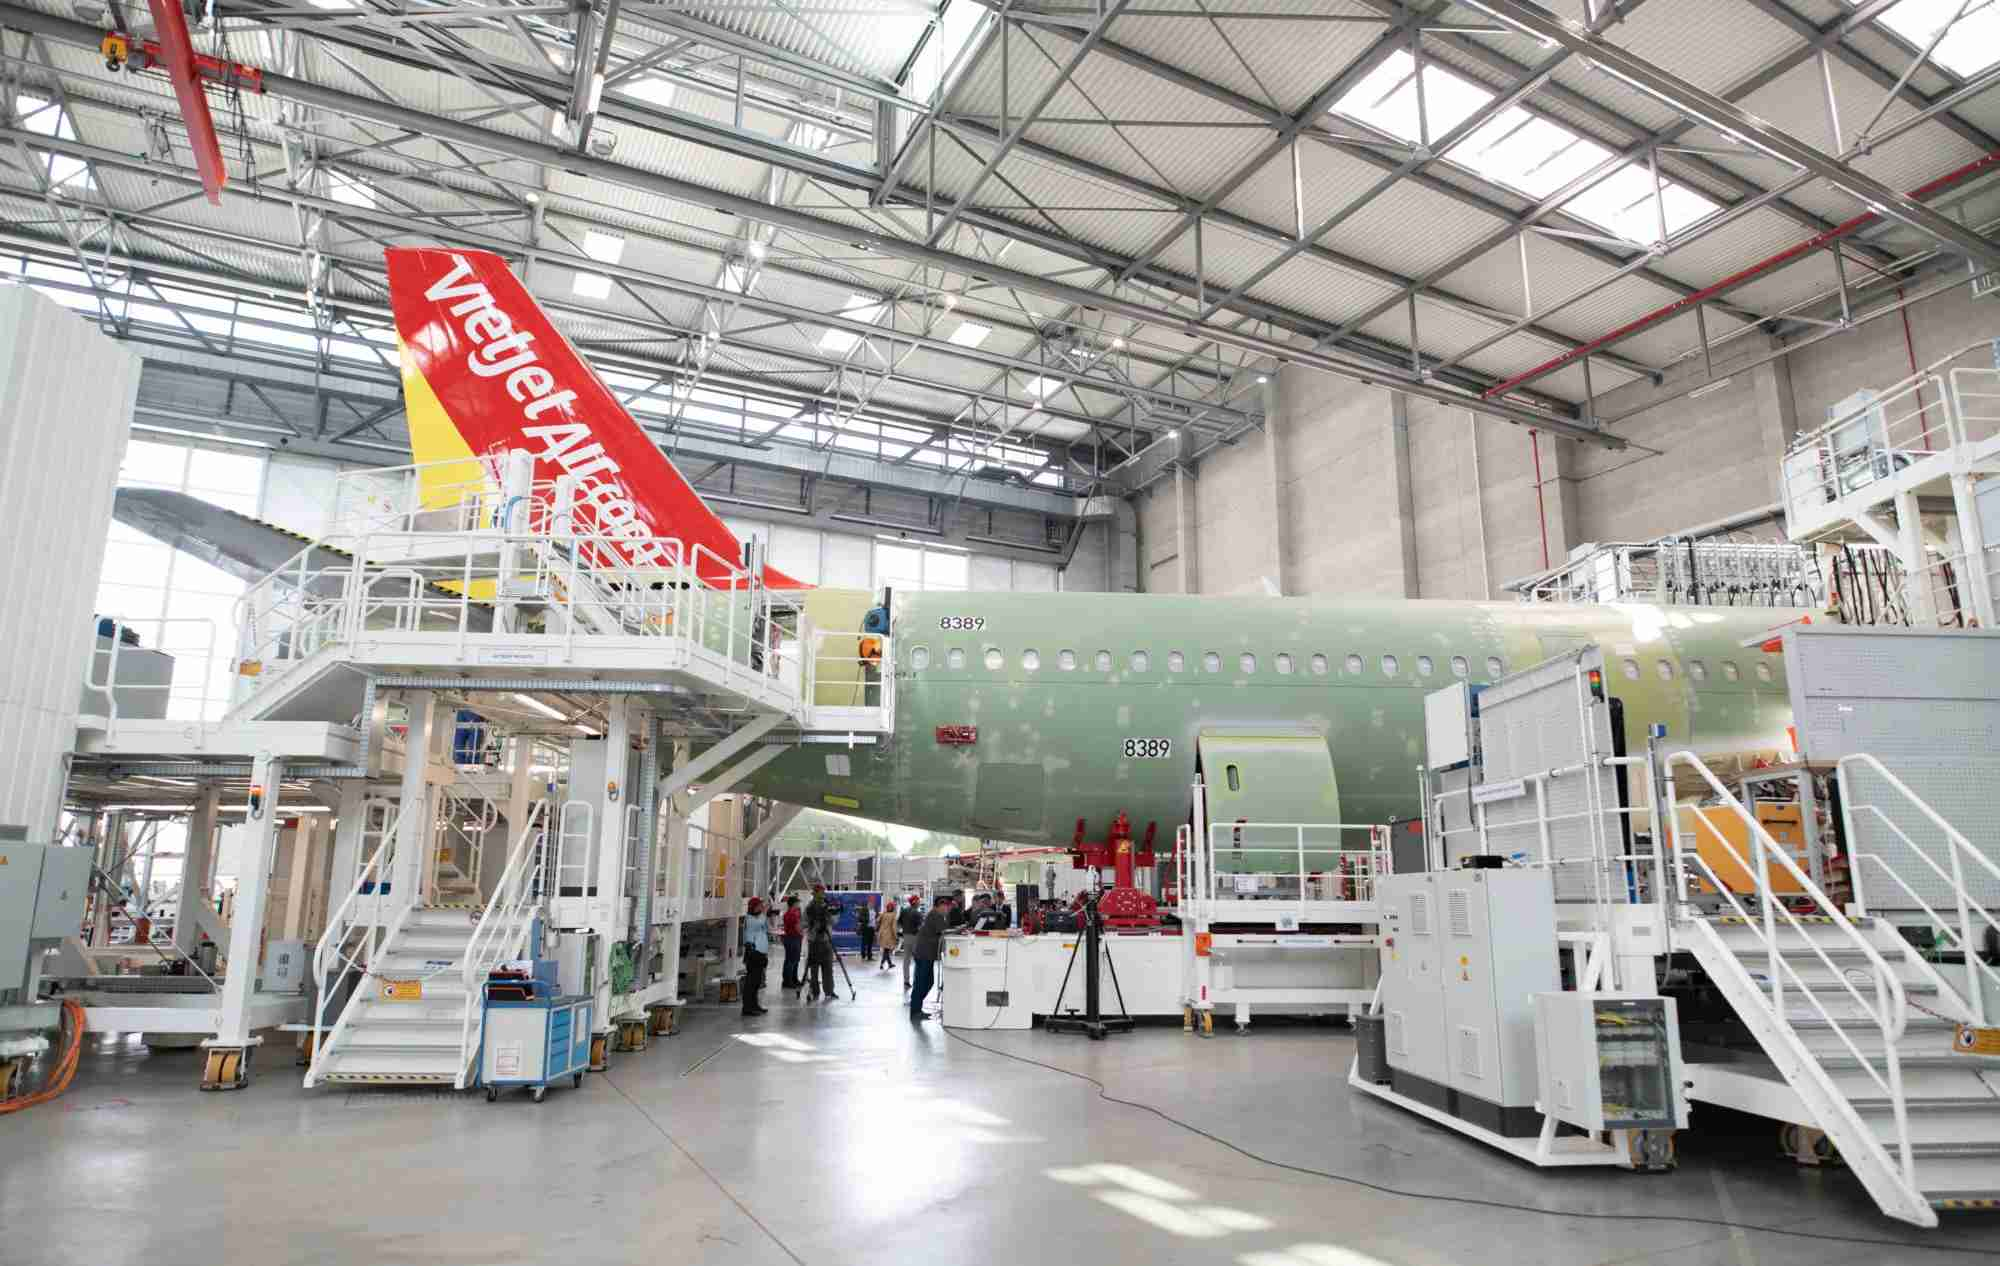 14 June 2018, Hamburg, Germany: An aircraft will be mounted in the new A320 production line at the Airbus Finkenwerder plant. Photo: Daniel Reinhardt/dpa (Photo by Daniel Reinhardt/picture alliance via Getty Images)